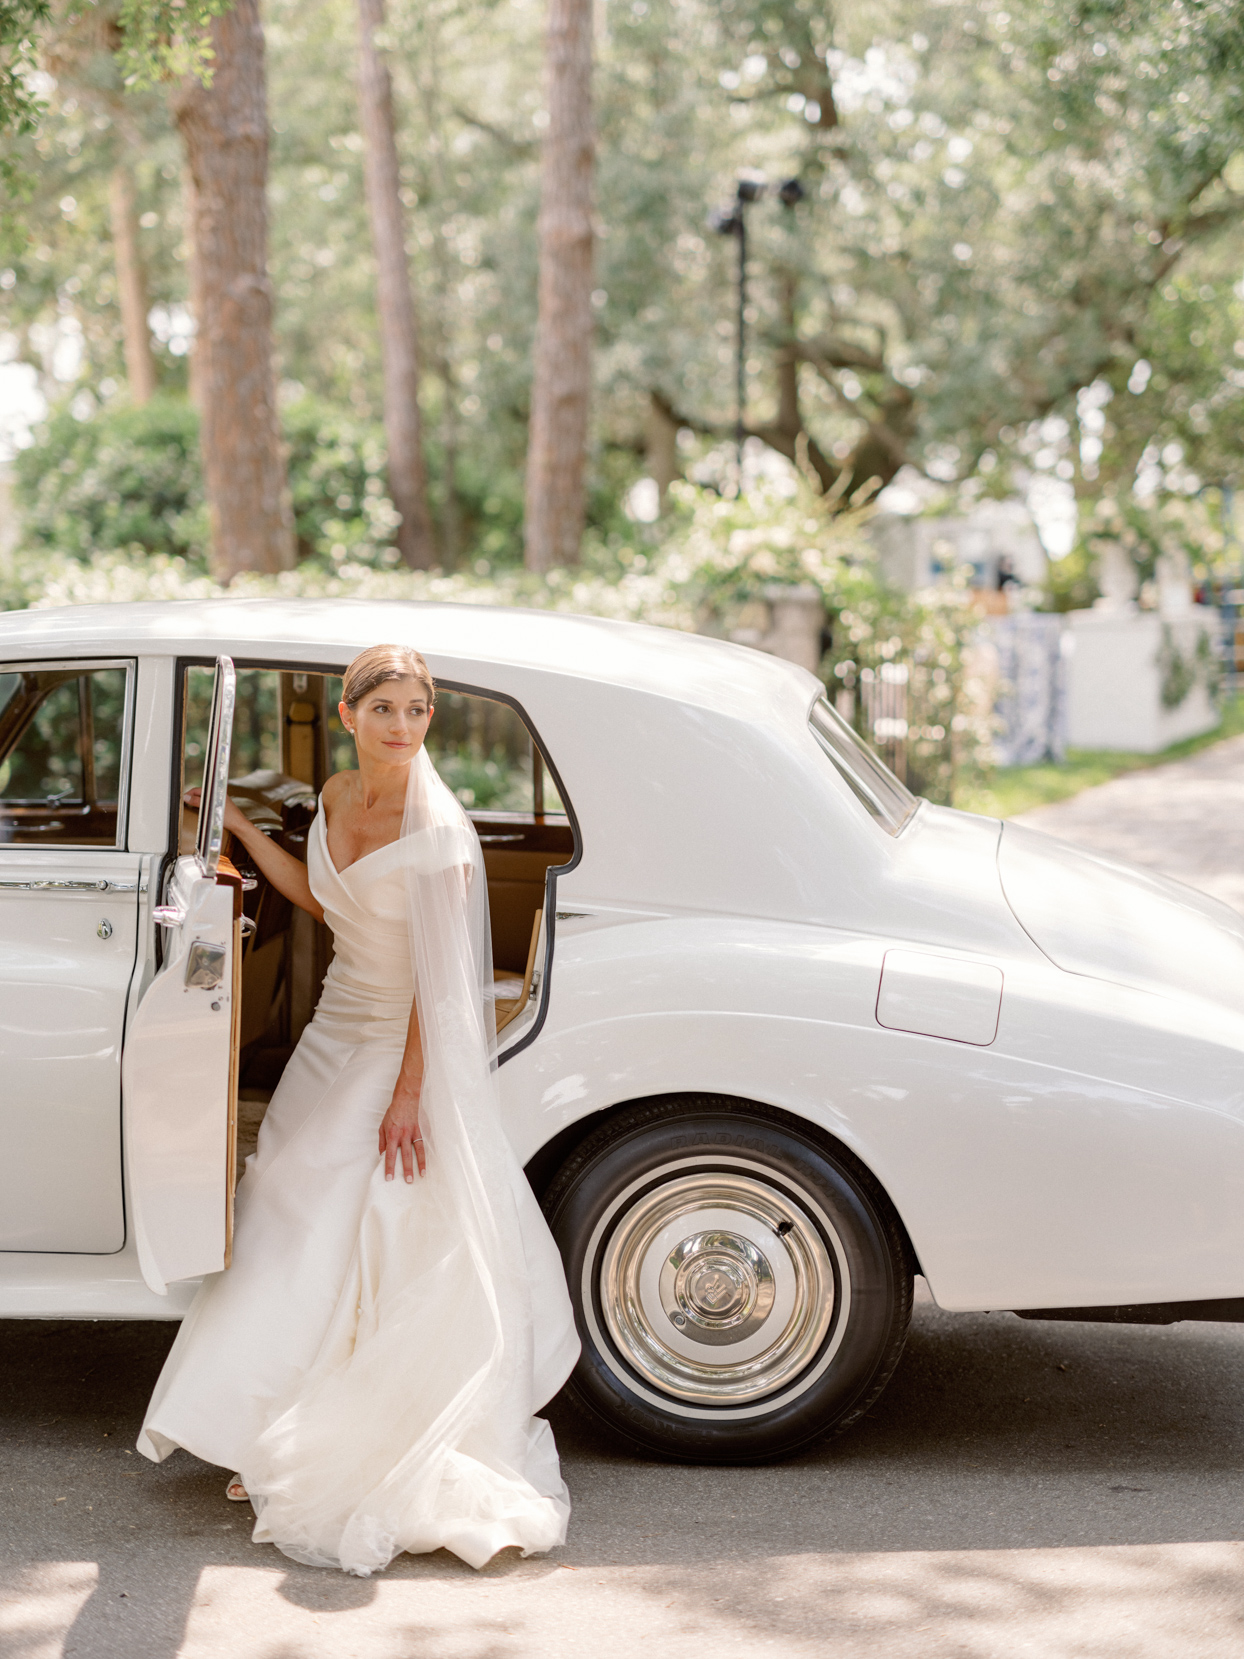 bride getting out of white vintage car